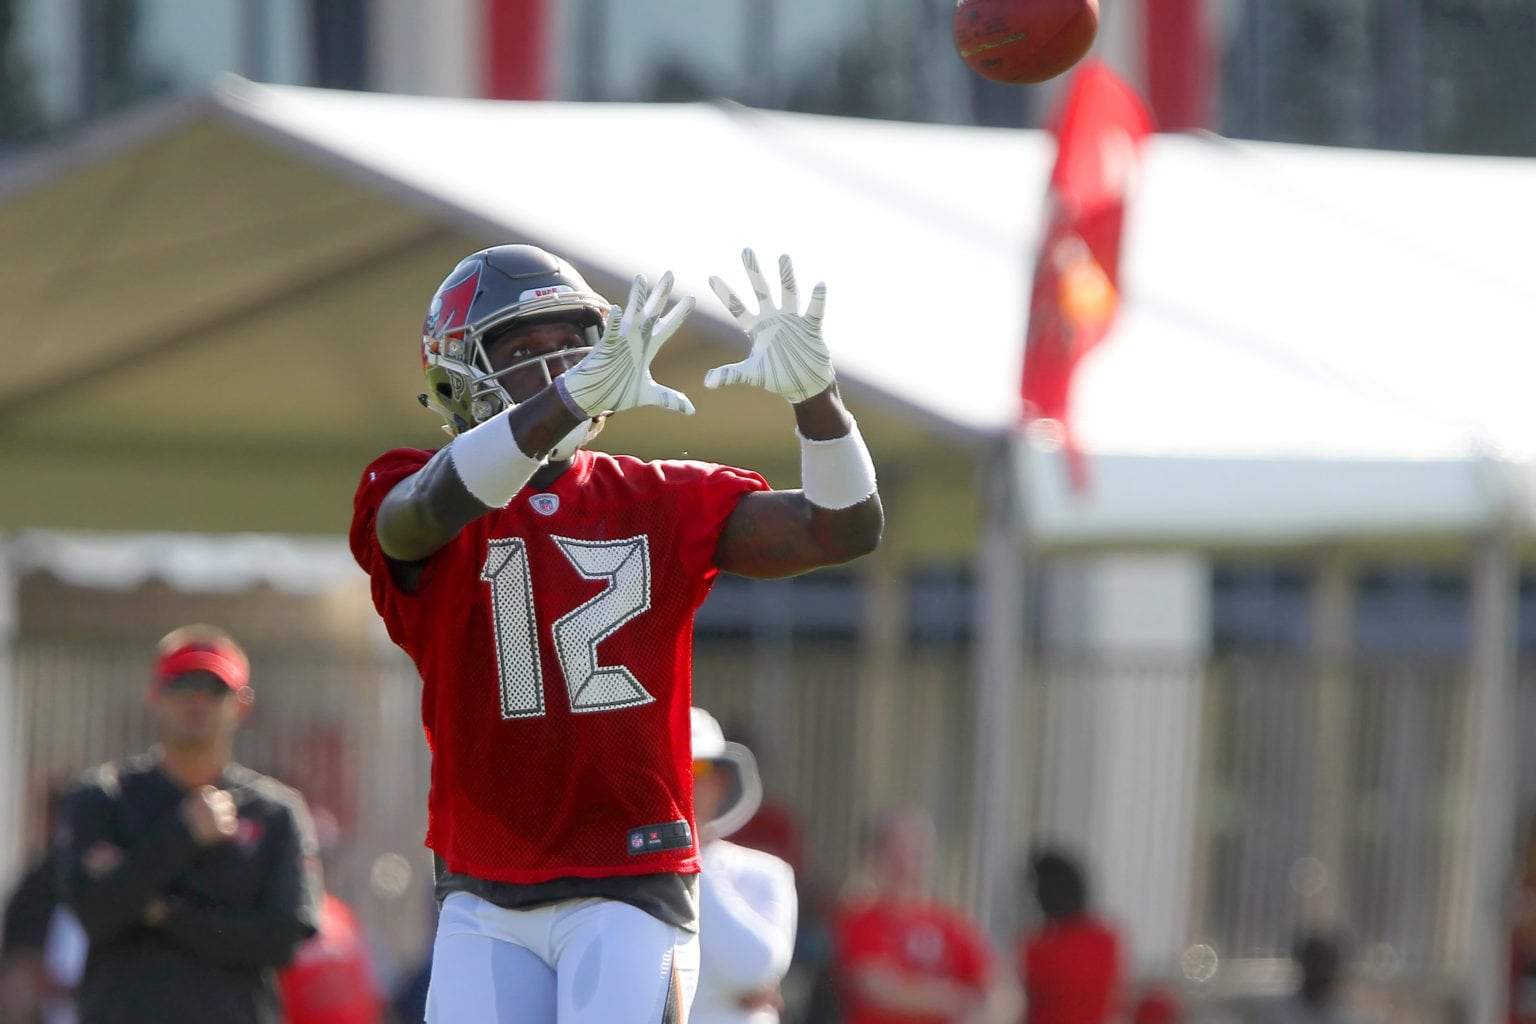 Bucs Camp Recap 7-28: Offense Shines With Evans And Godwin